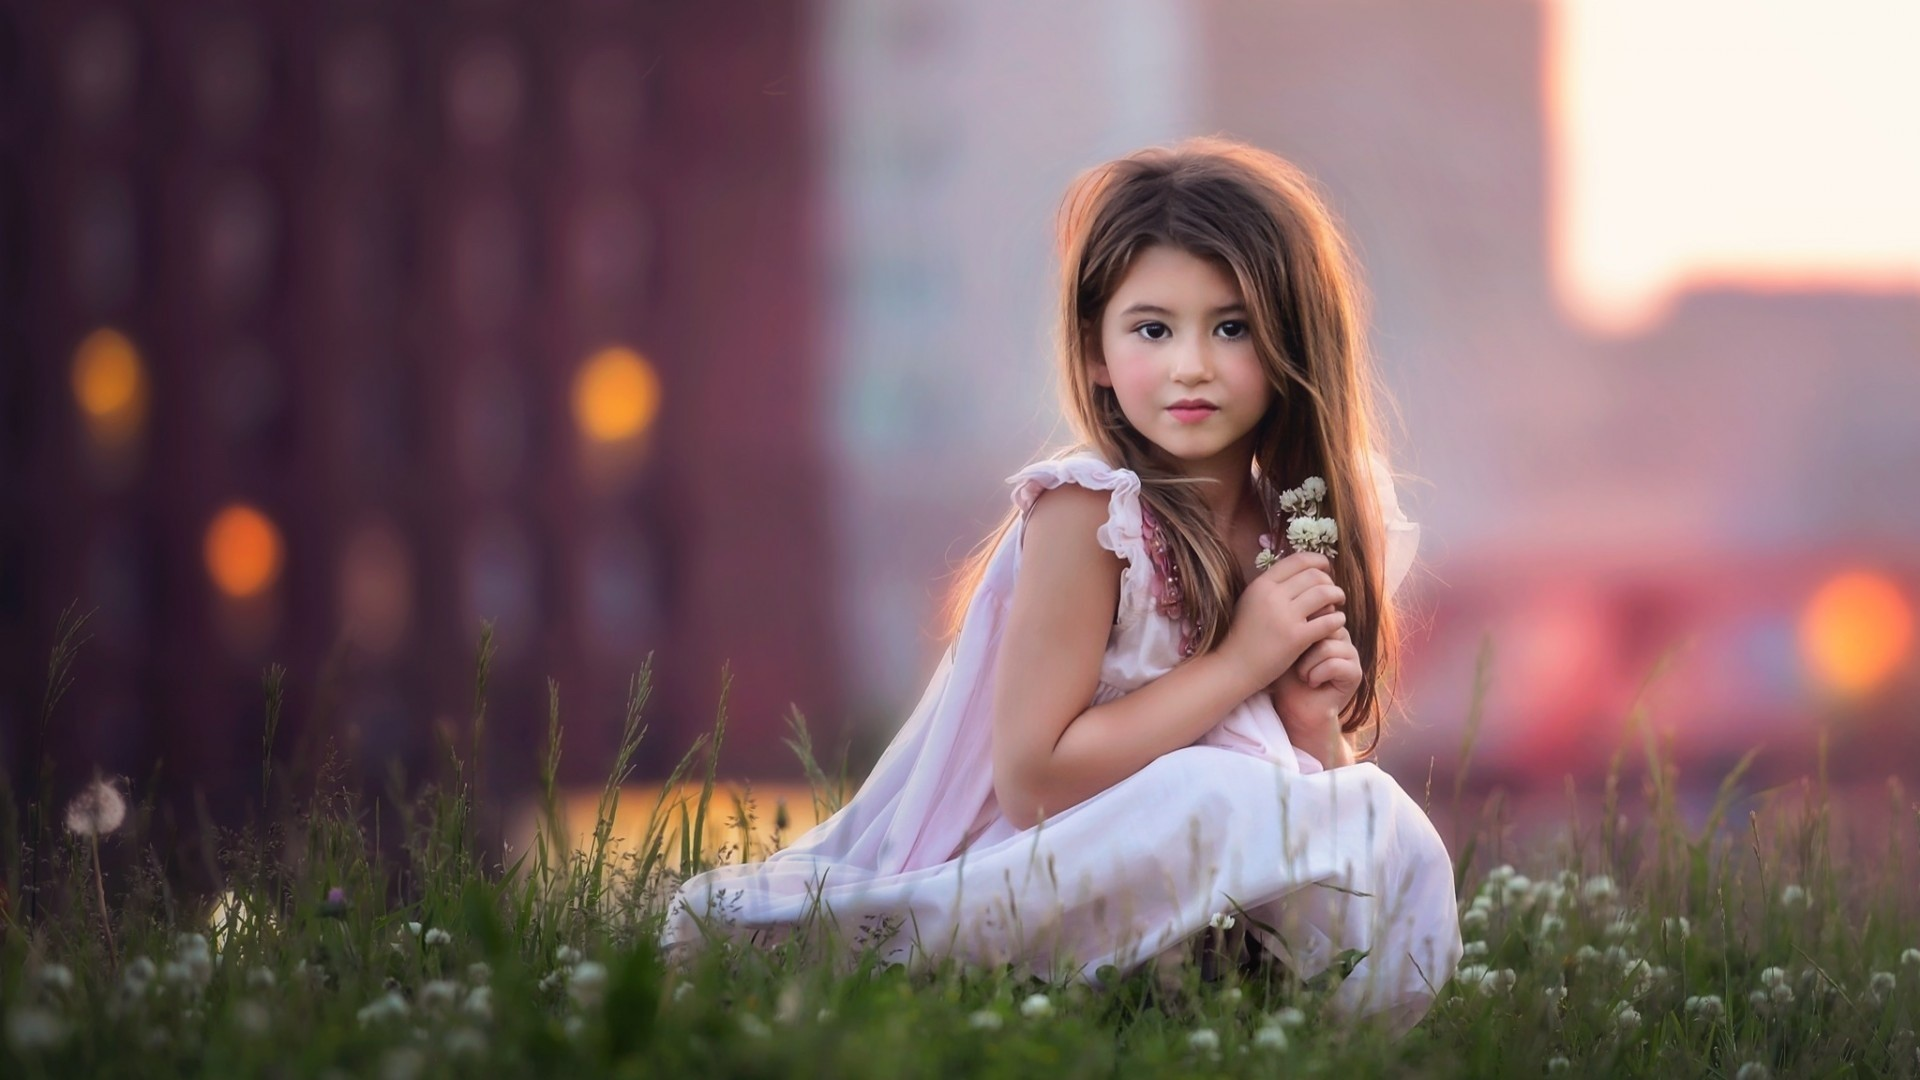 Cute Baby Girl Wallpapers posted by John Simpson